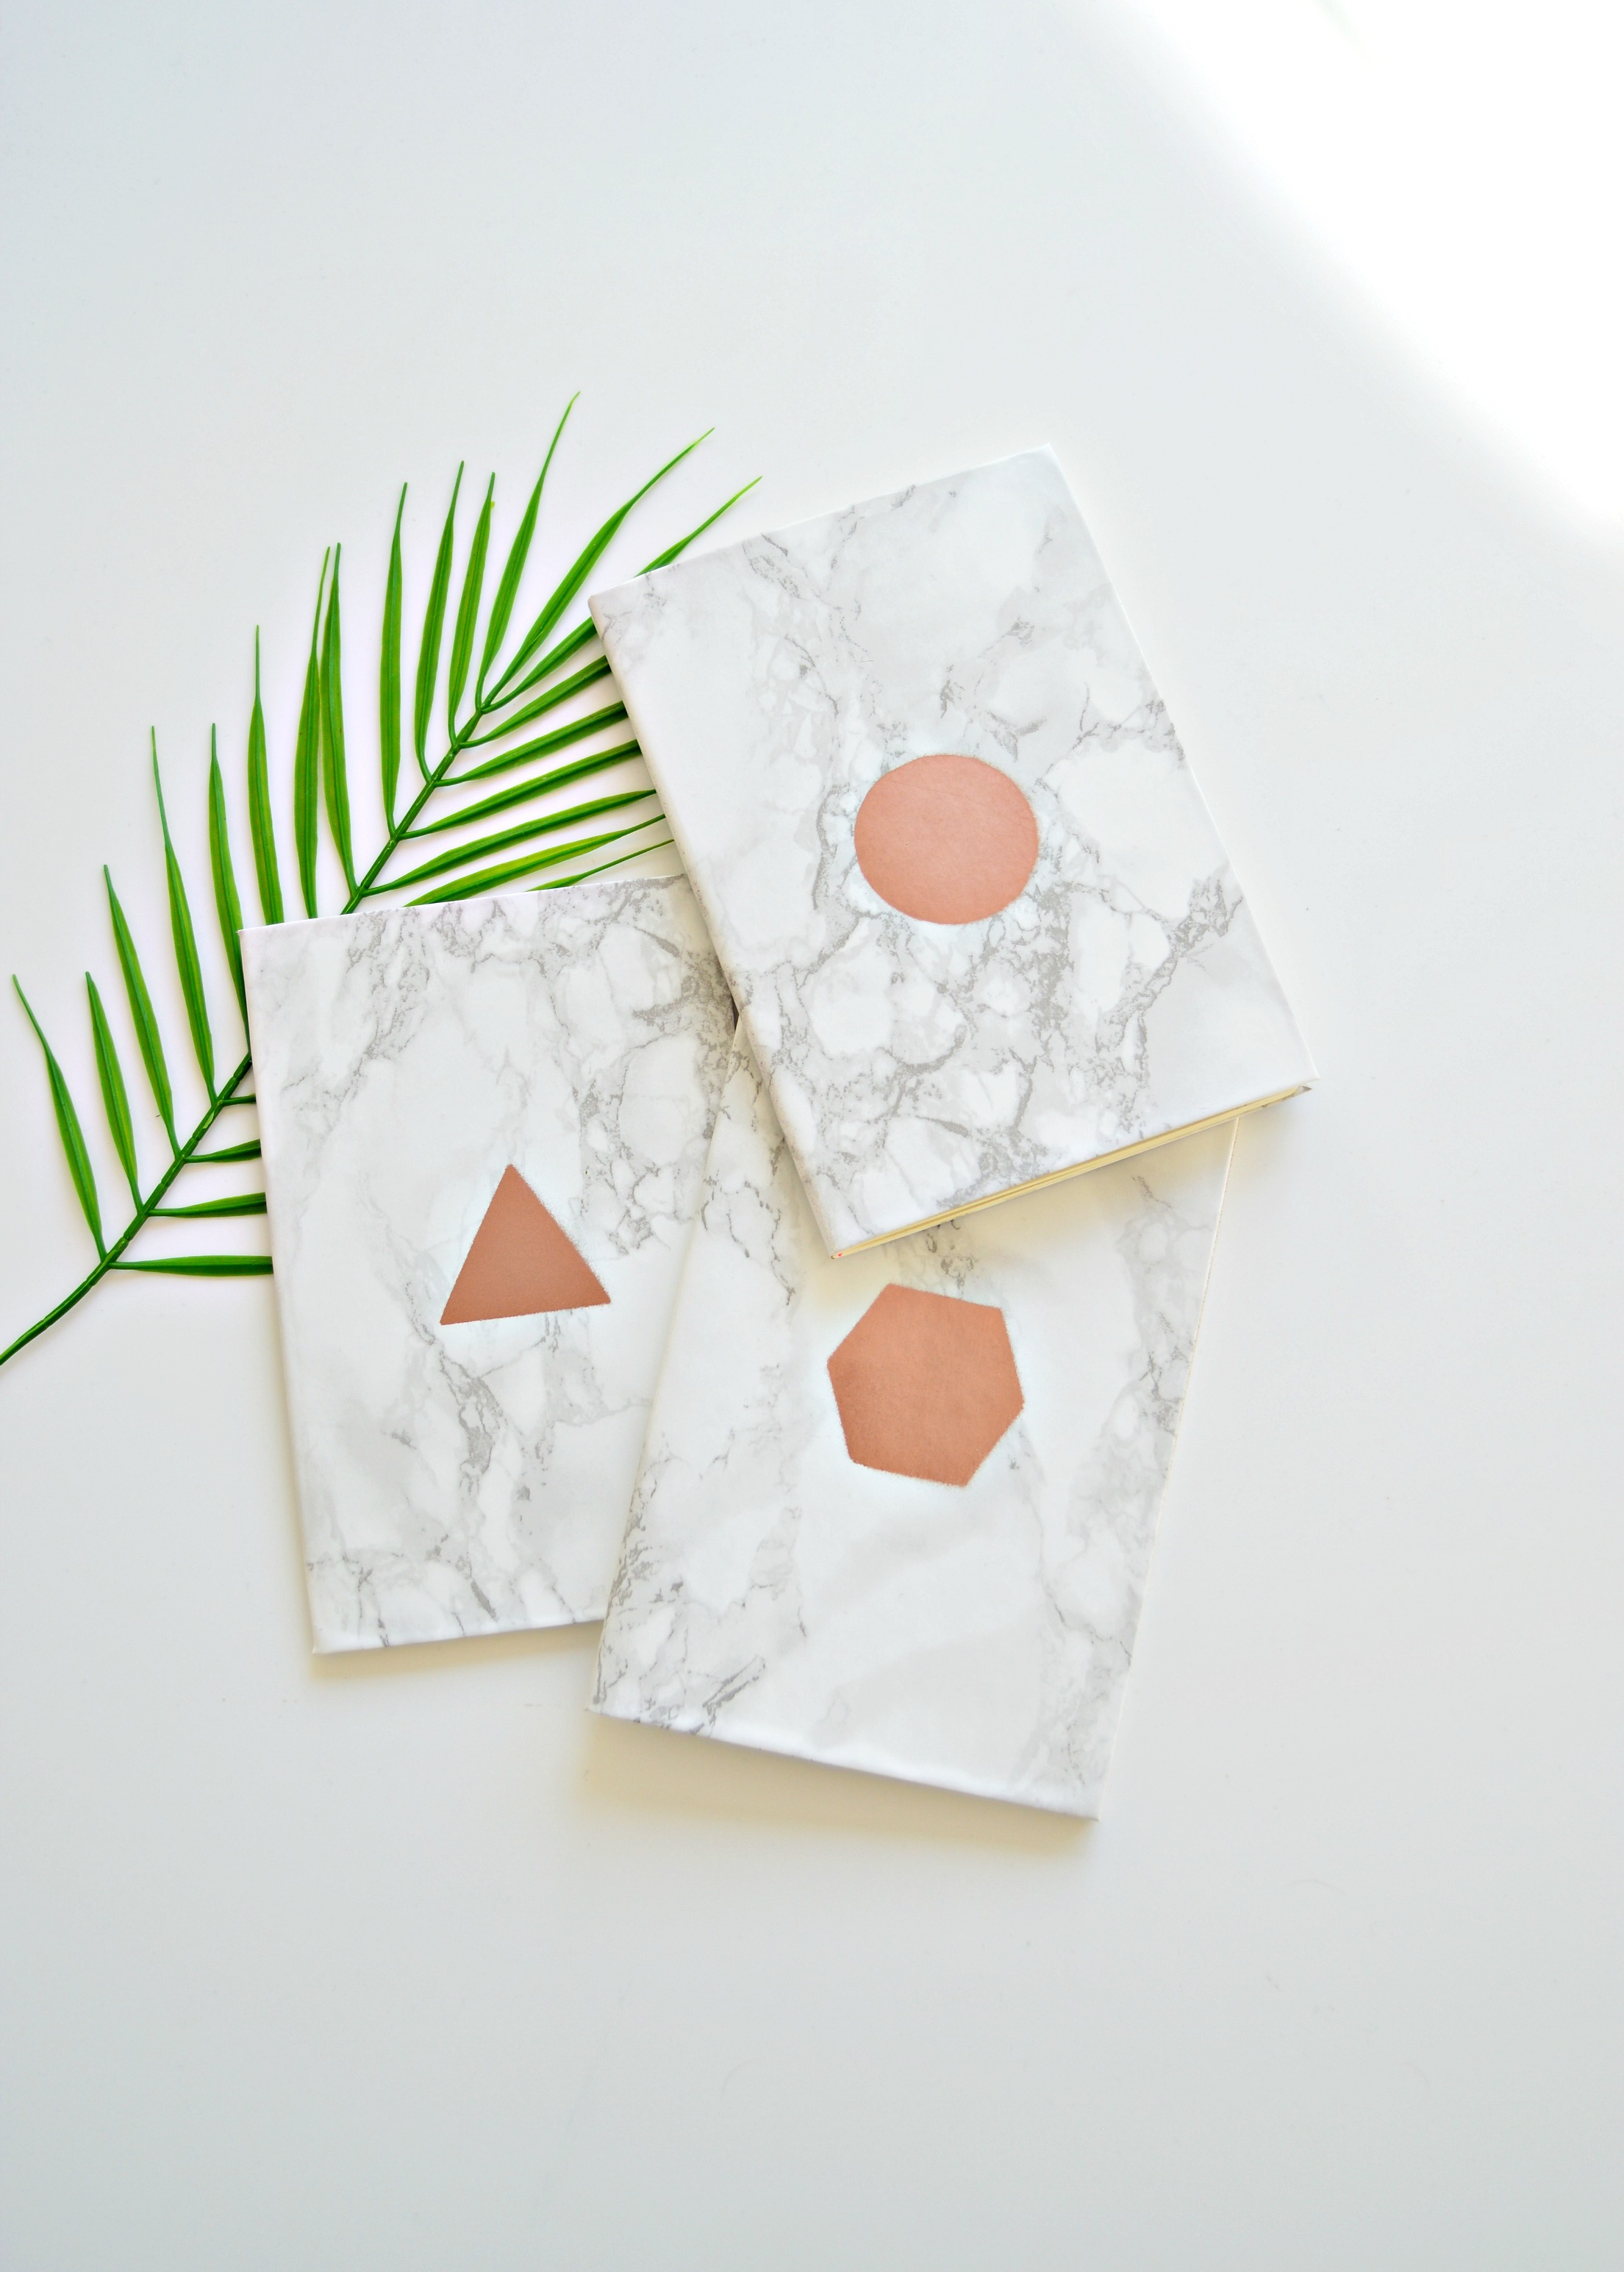 10 minute diy: graphic copper and marble notebook - diy home decor